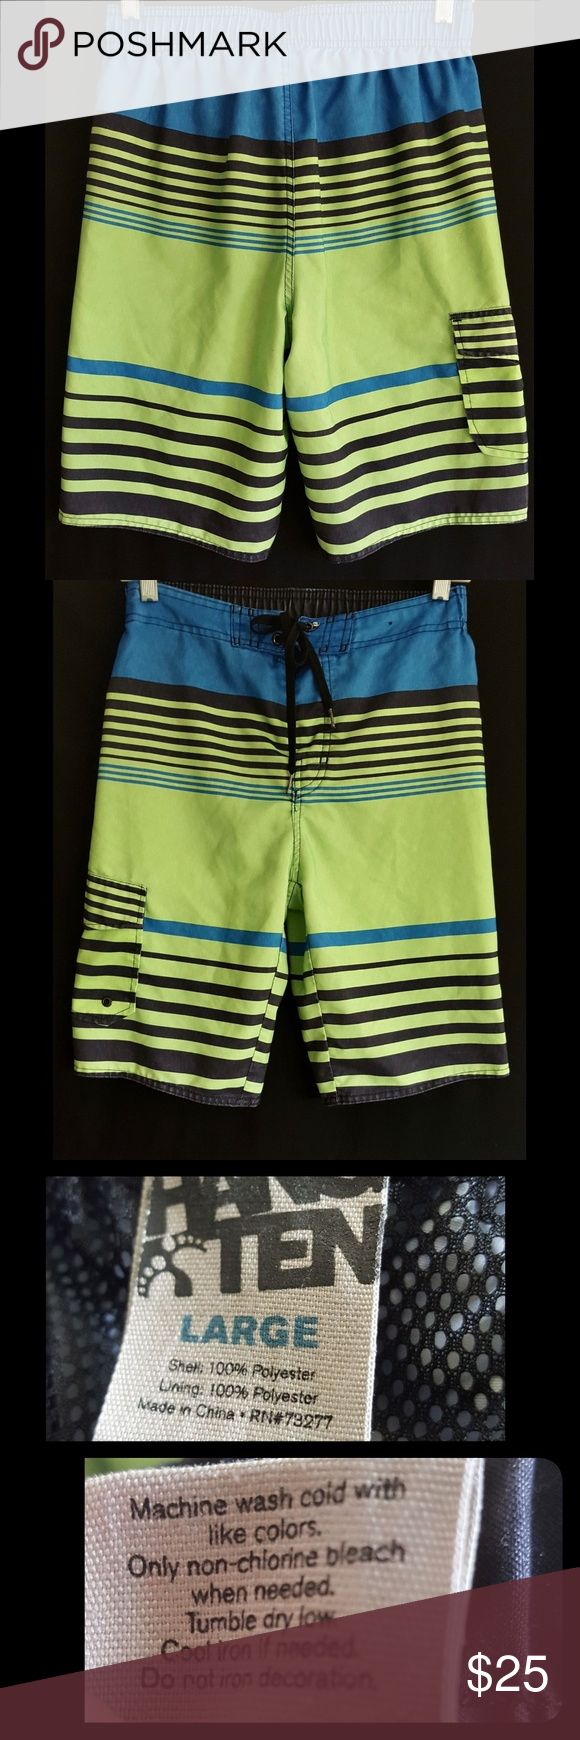 Hang Ten men's swim trunks board shorts Surfer L Hang Ten men's swim trunks, board surface shorts. Striped blue and green. Mesh lined. Size tank States large. Please see measurements as these seem a little small to me. Waist laying flat is 13.5 inches unstretched. Rise 12.5 inches. Inseam 30.5 inches gently used condition with no flaws. Hang Ten Swim